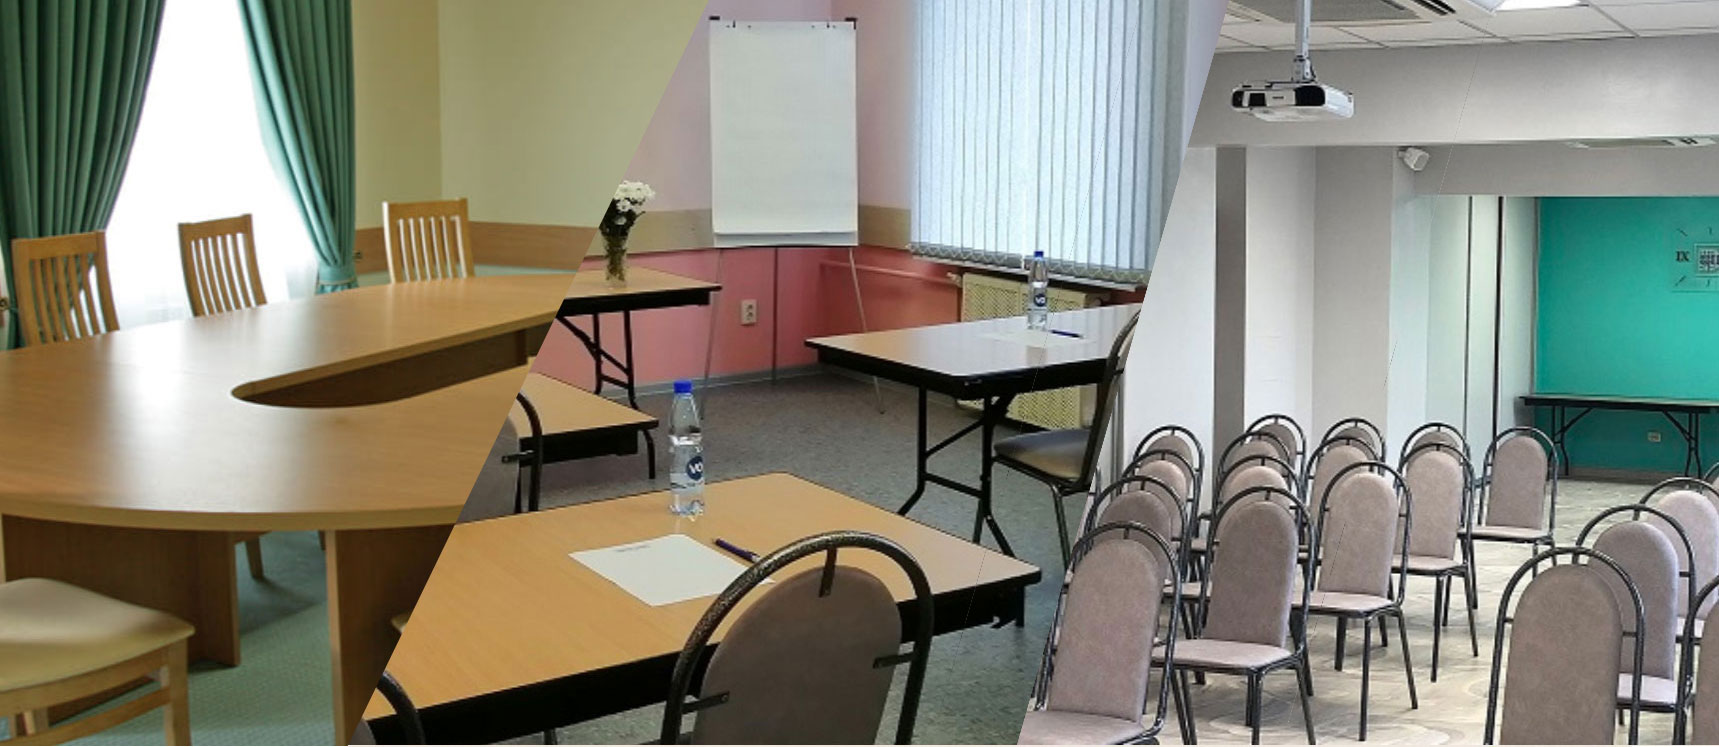 Meeting rooms in 3 stars Hotel in Moscow